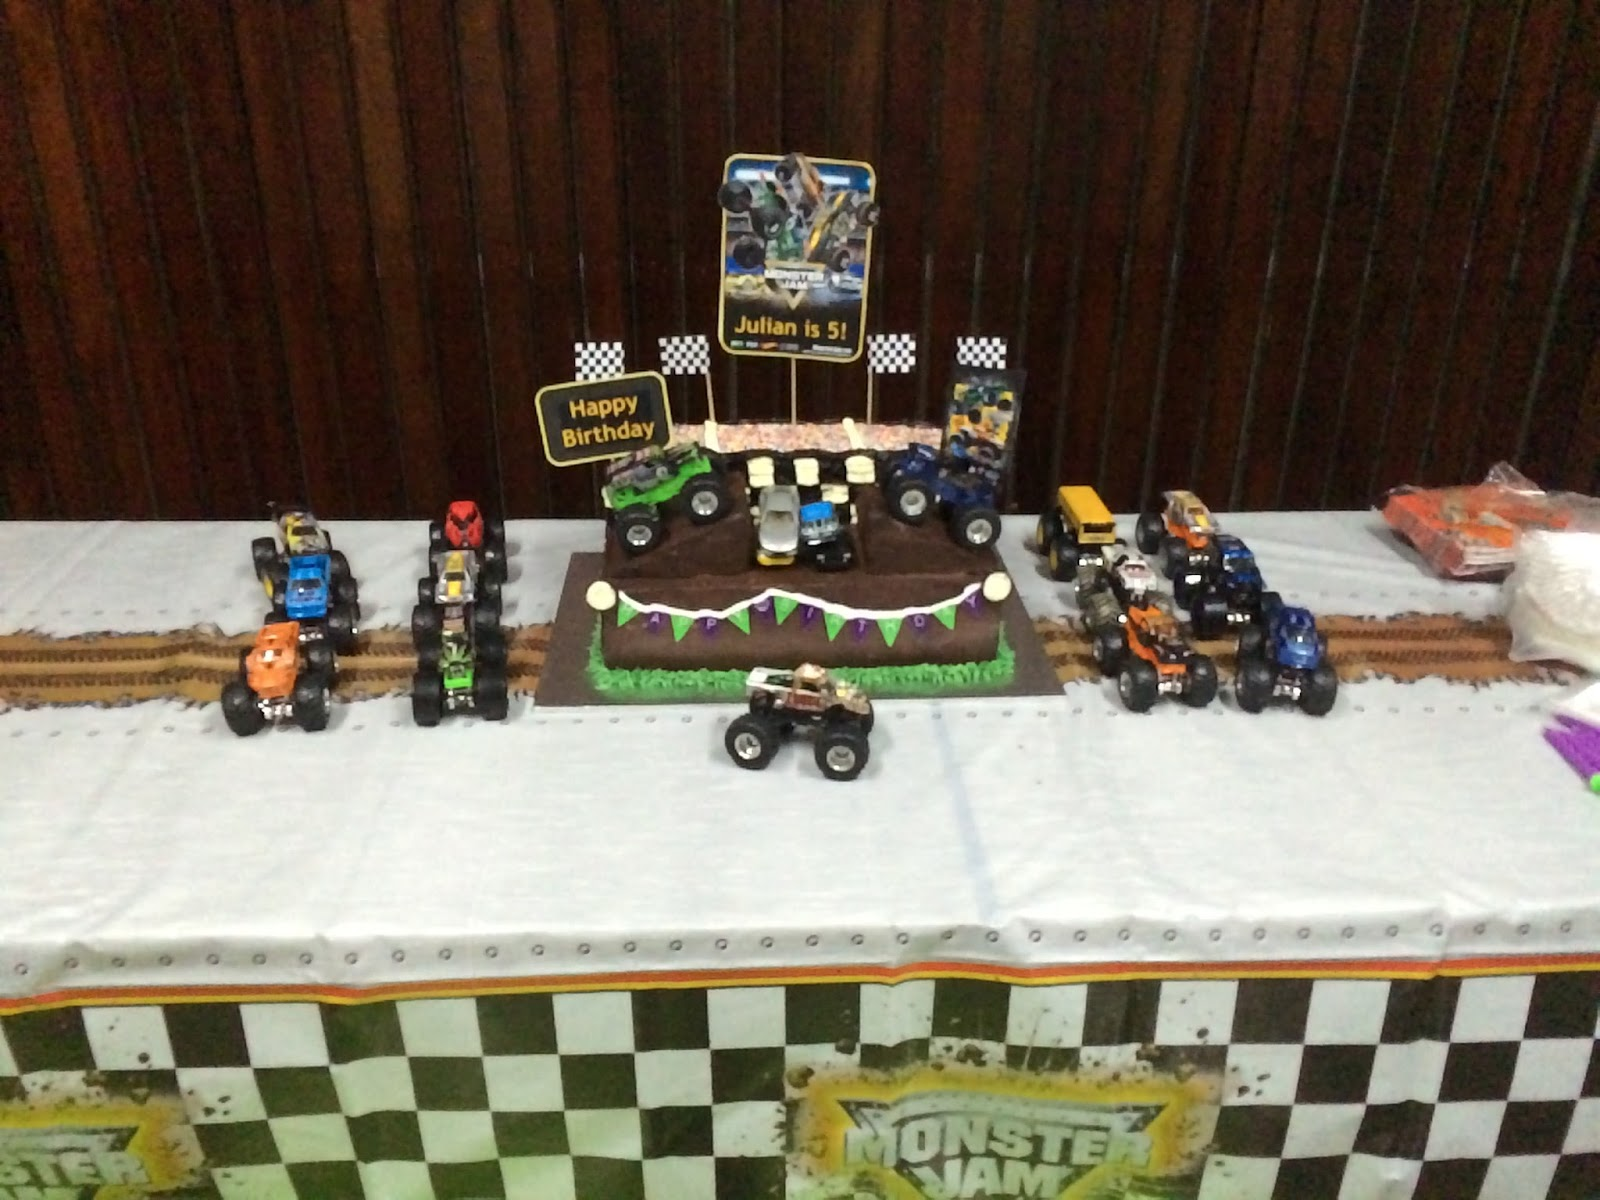 ... birthday party! Check out the cake with the army of Monster Trucks